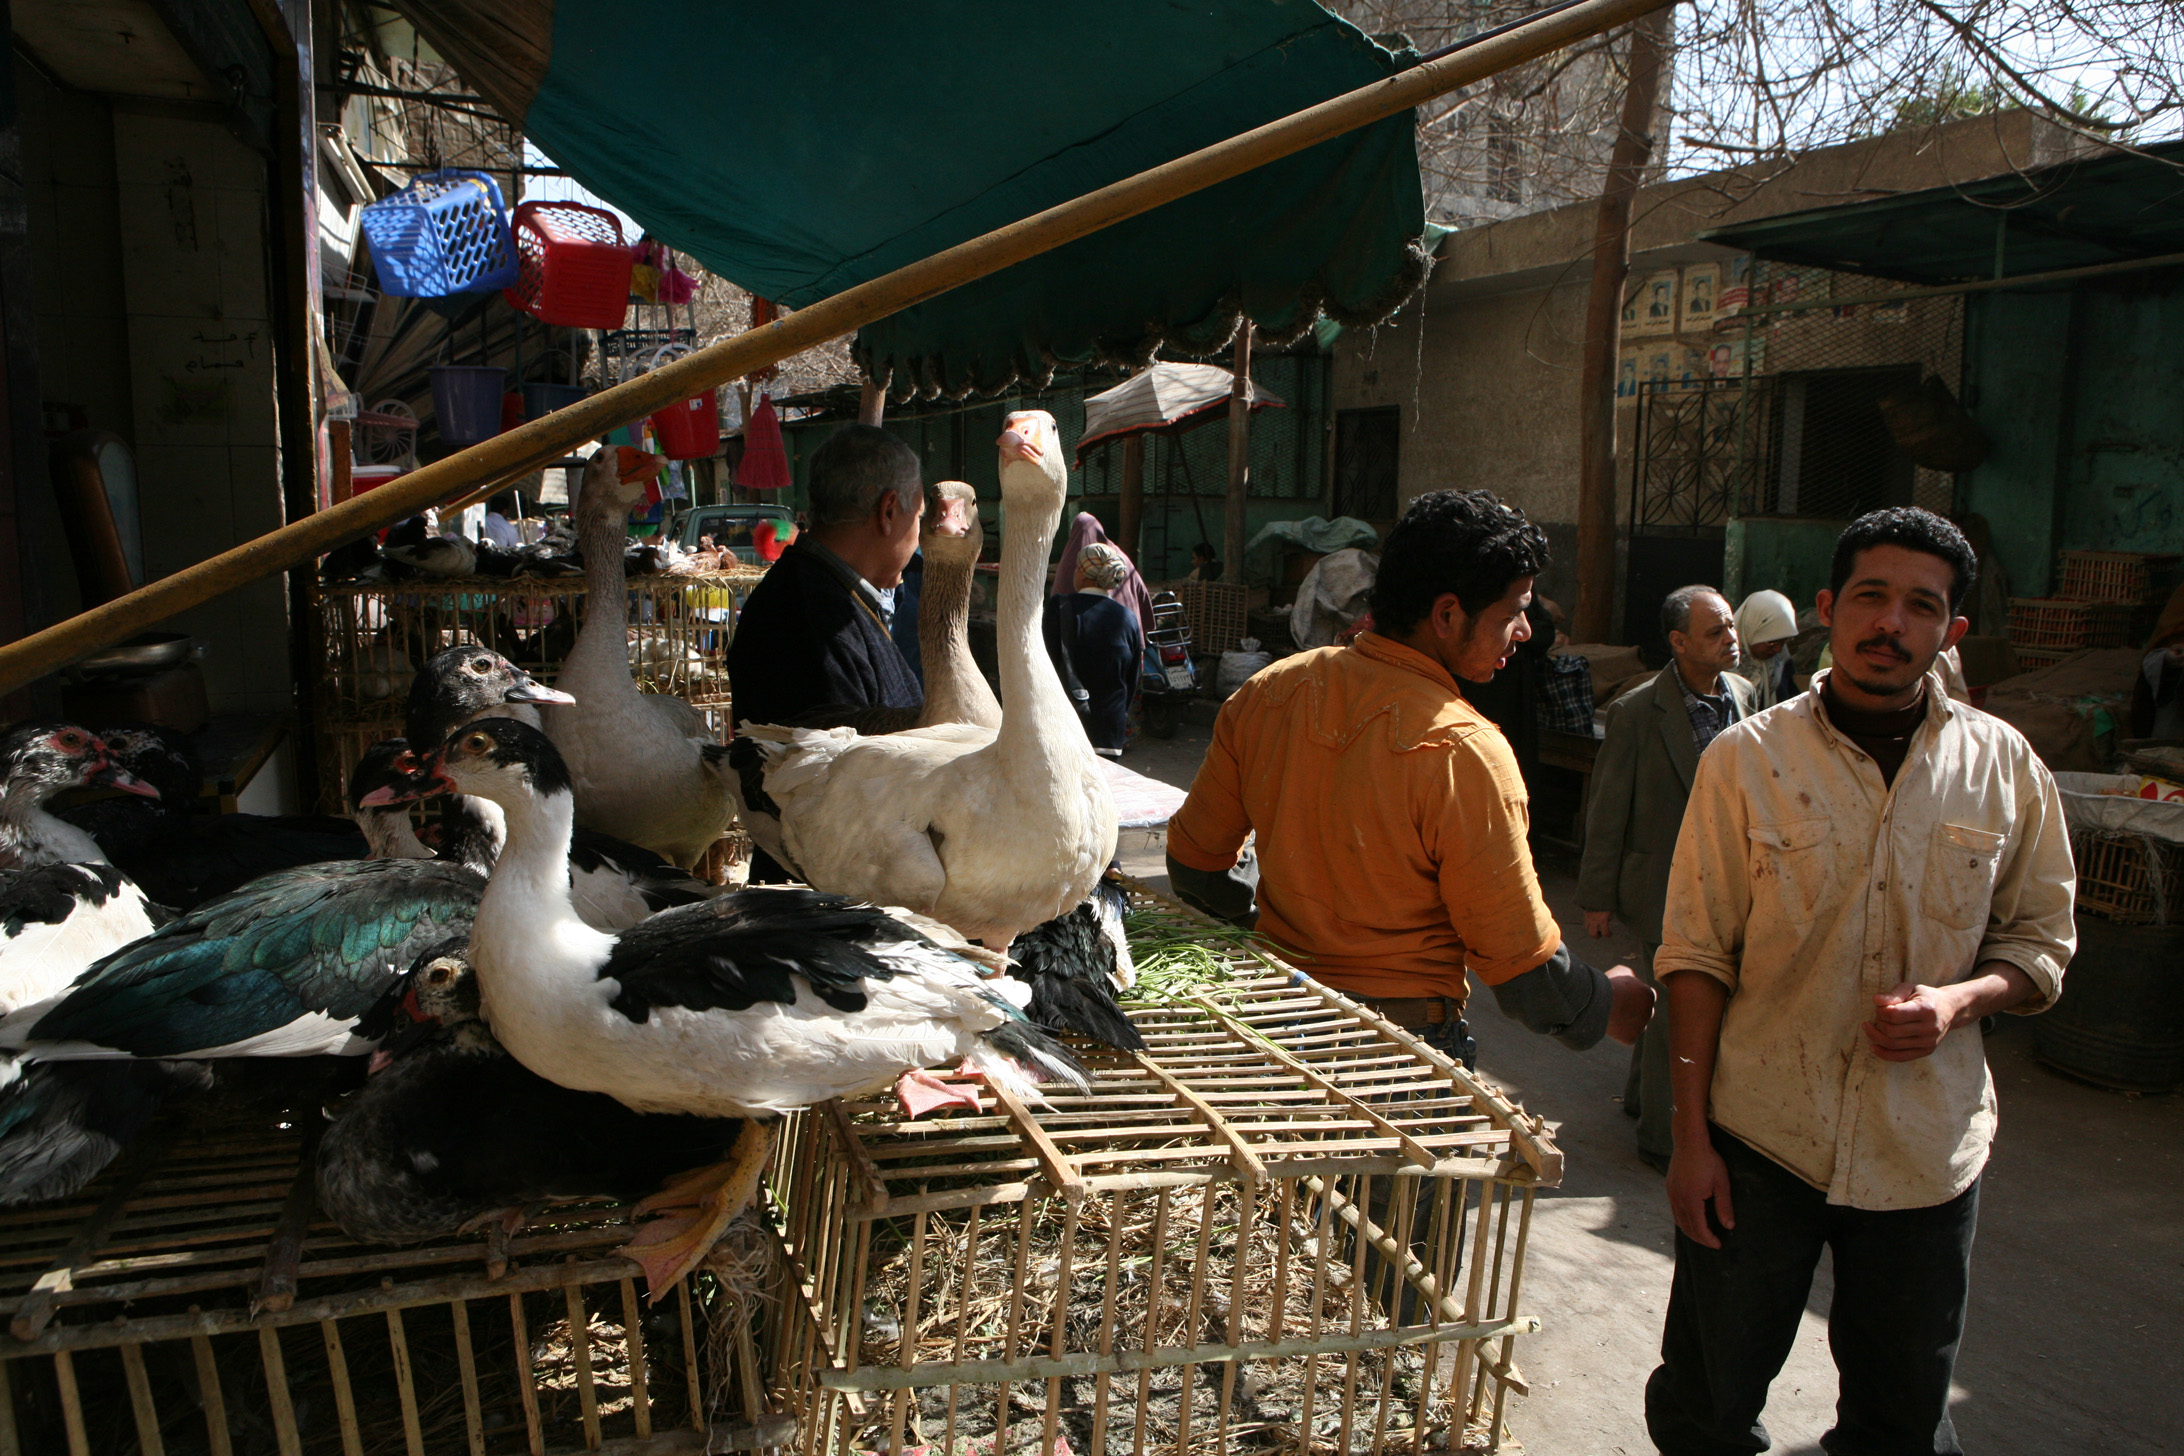 Poultry sellers in Seyede Zeinab market in old Cairo, Egypt, 26 February 2007. Avian influenza viruses occur naturally among birds but can be passed to humans through close contact with infected birds.